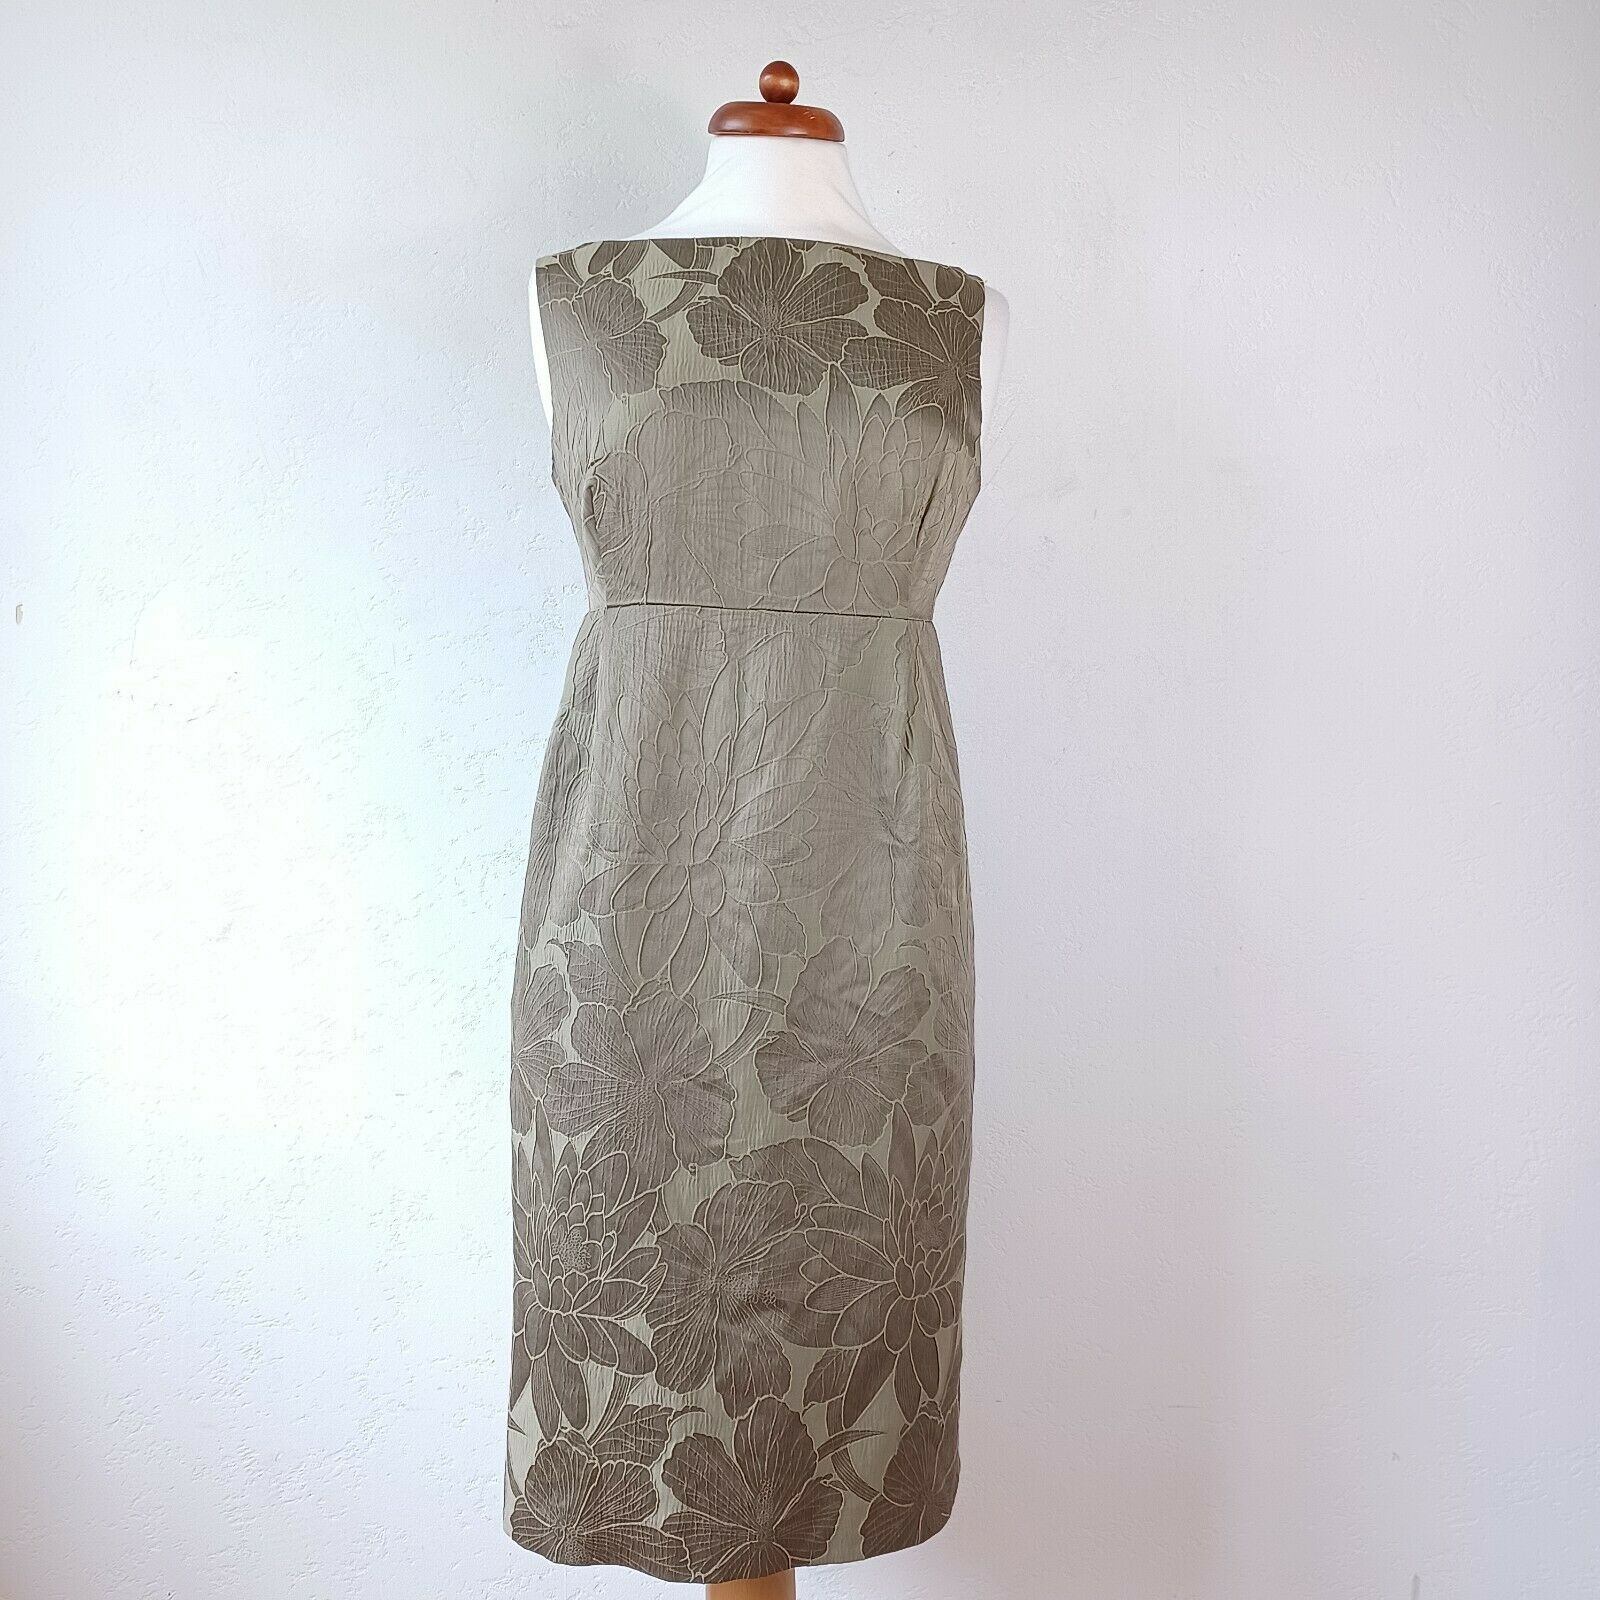 BNWT Laura Ashley Floral Jaquard Shift Dress Size 14 Mother Of The Bride Wedding